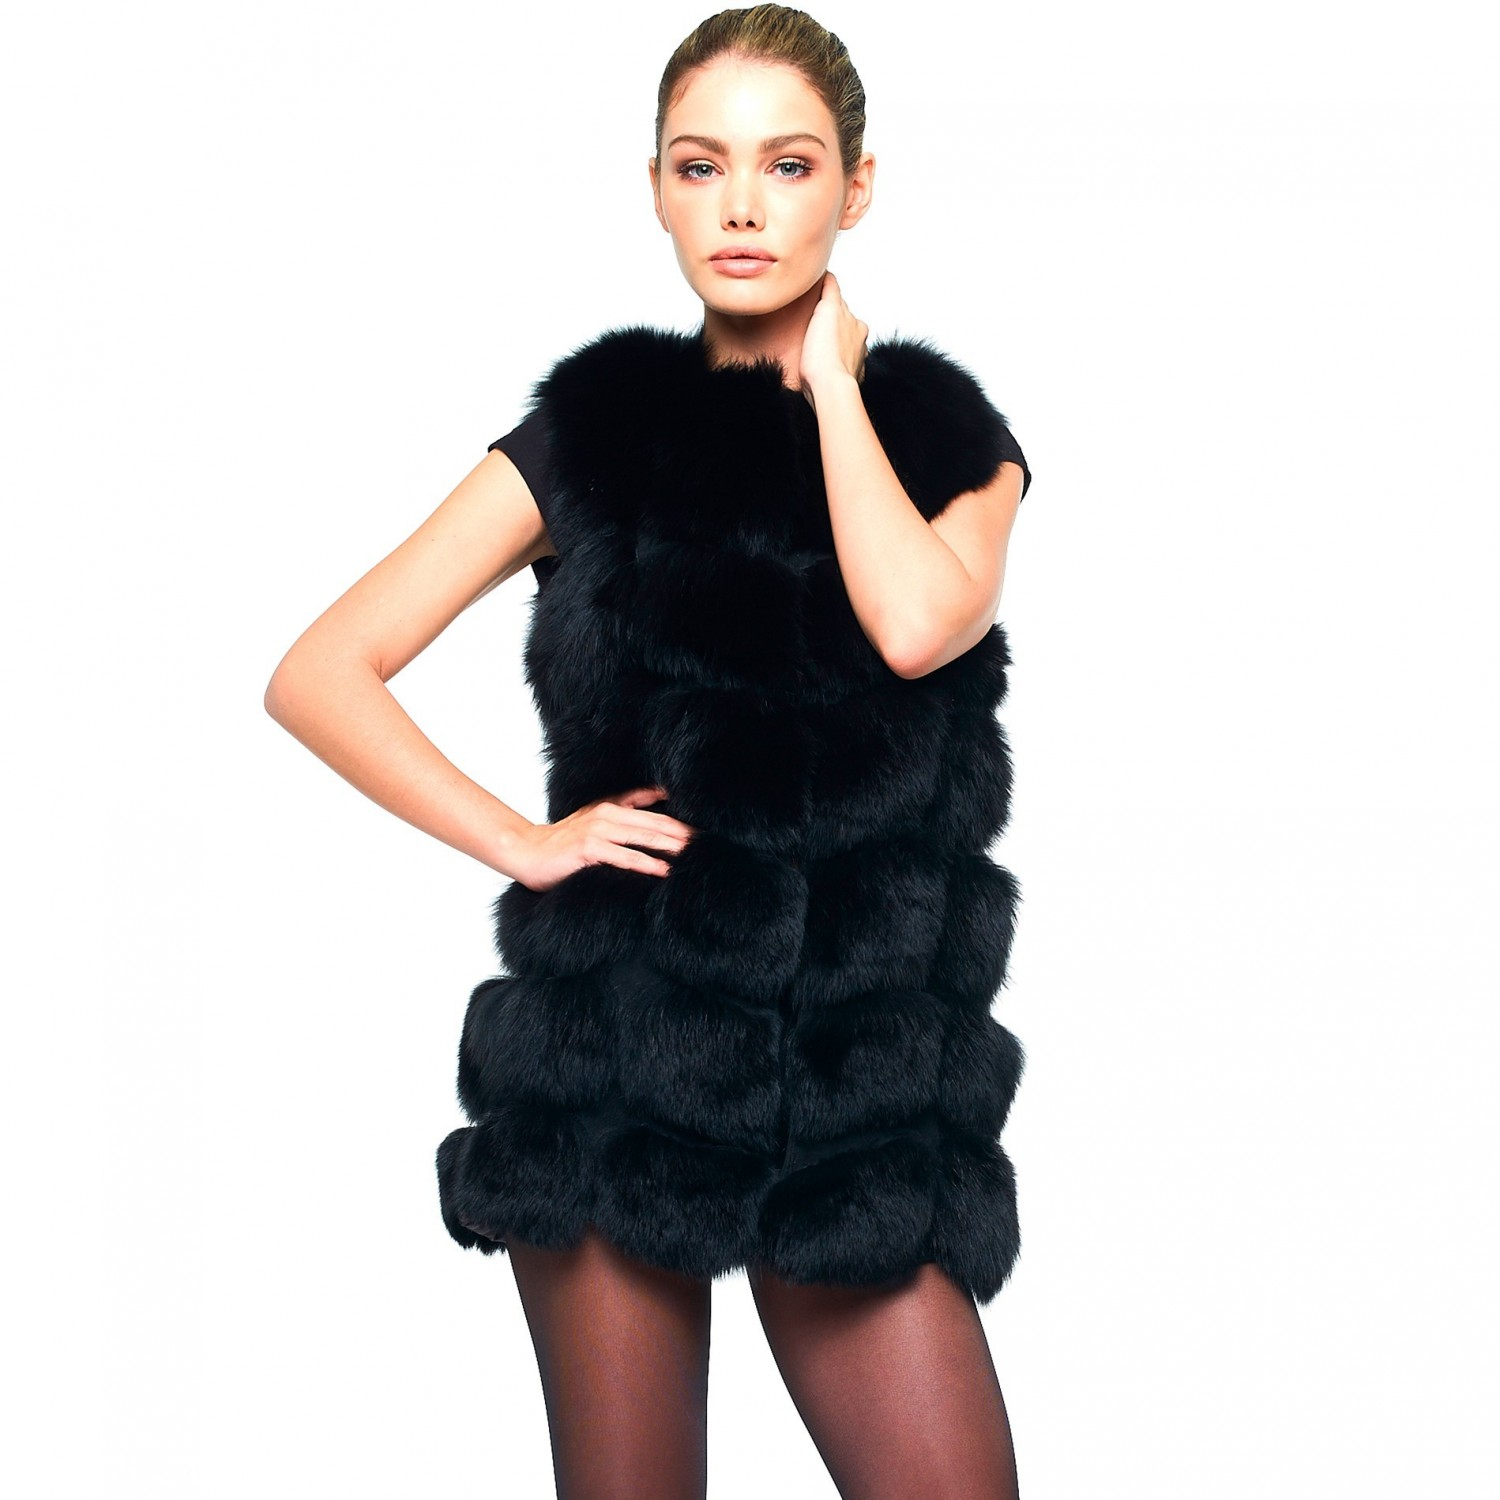 Fur vests - a symbol of elegance and femininity